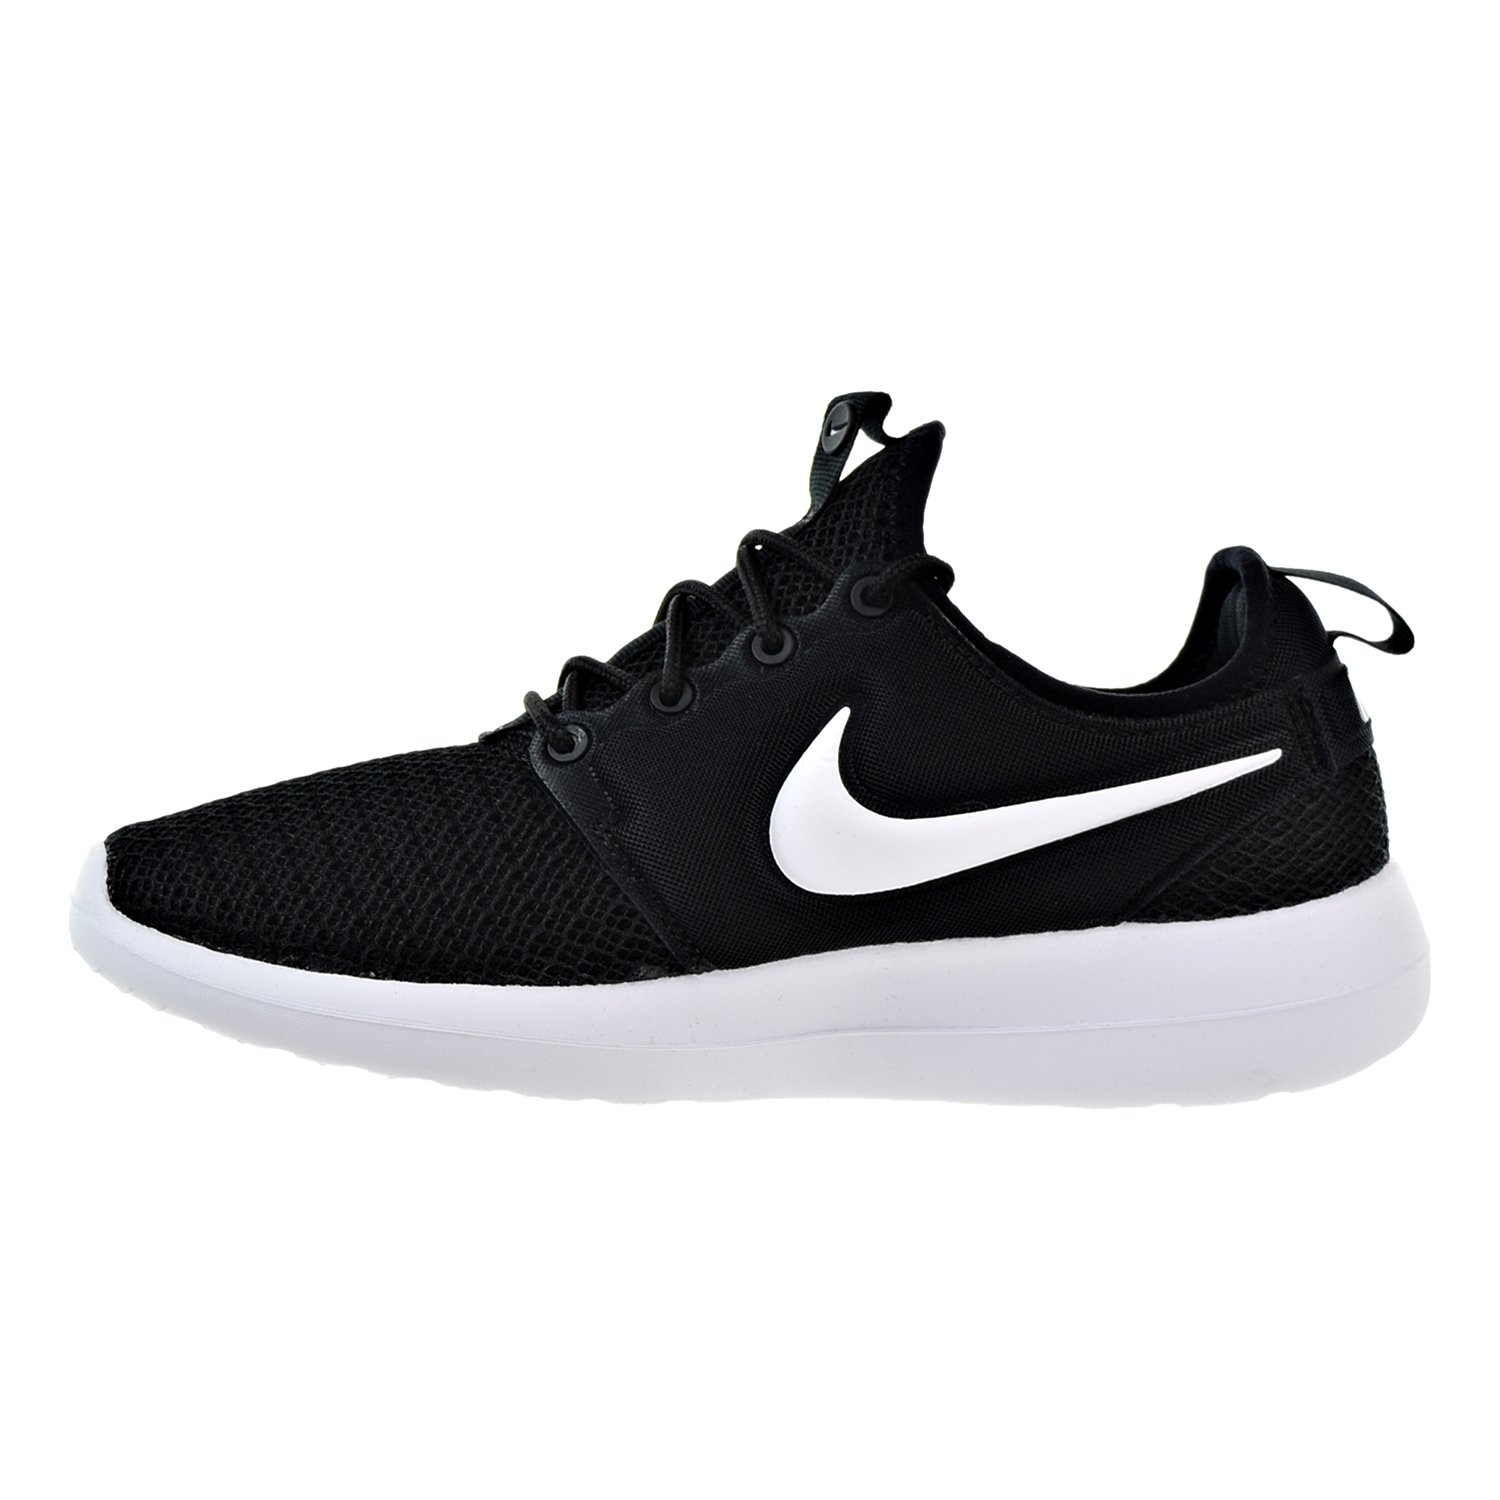 finest selection 4f405 a77f0 NIKE Roshe Two Women s Shoes Black Black White 844931-007 (10.5 B(M) US)   Amazon.co.uk  Shoes   Bags